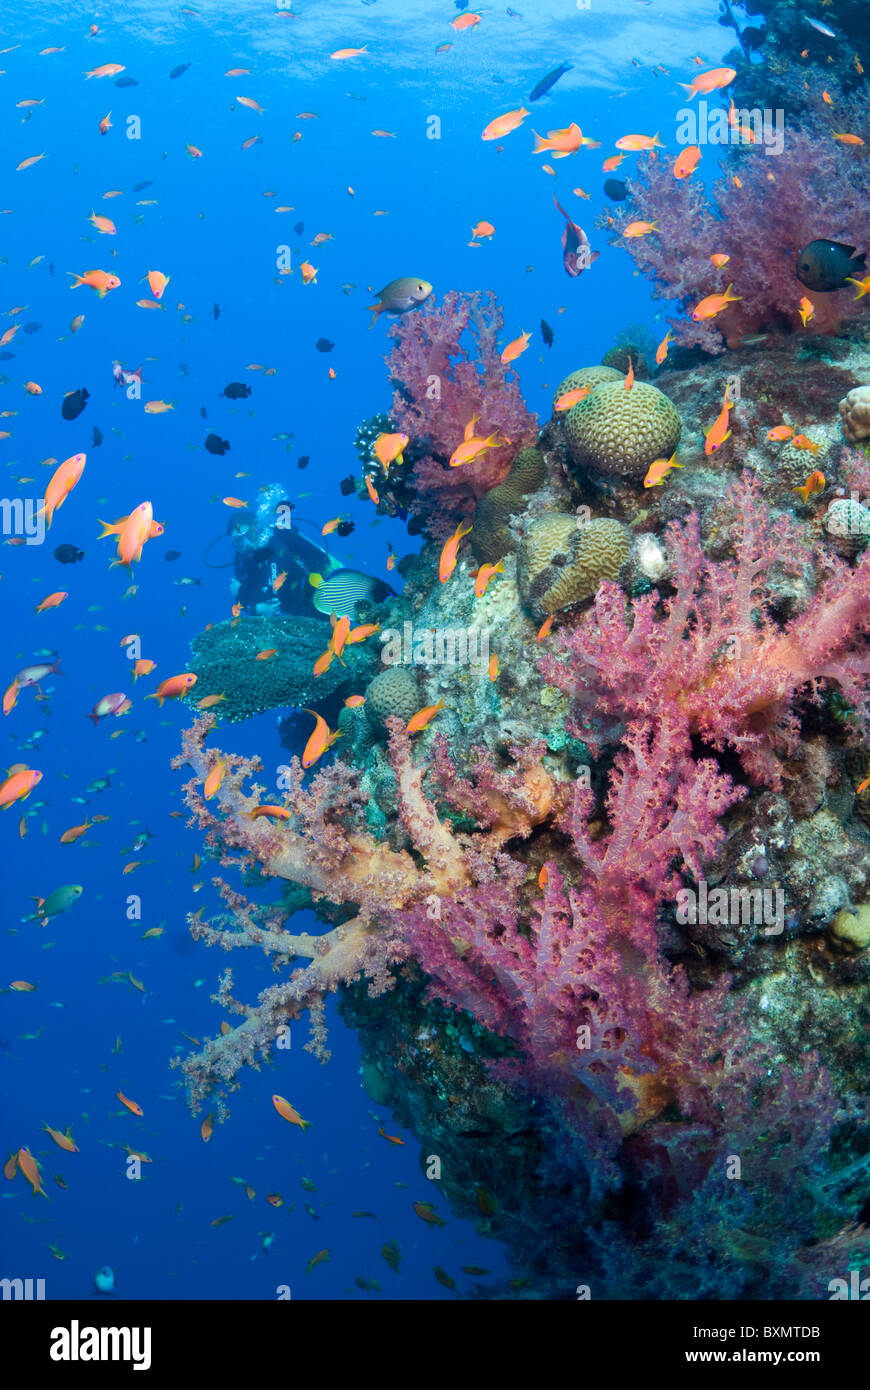 Coral growth on the wreck structure - Stock Image